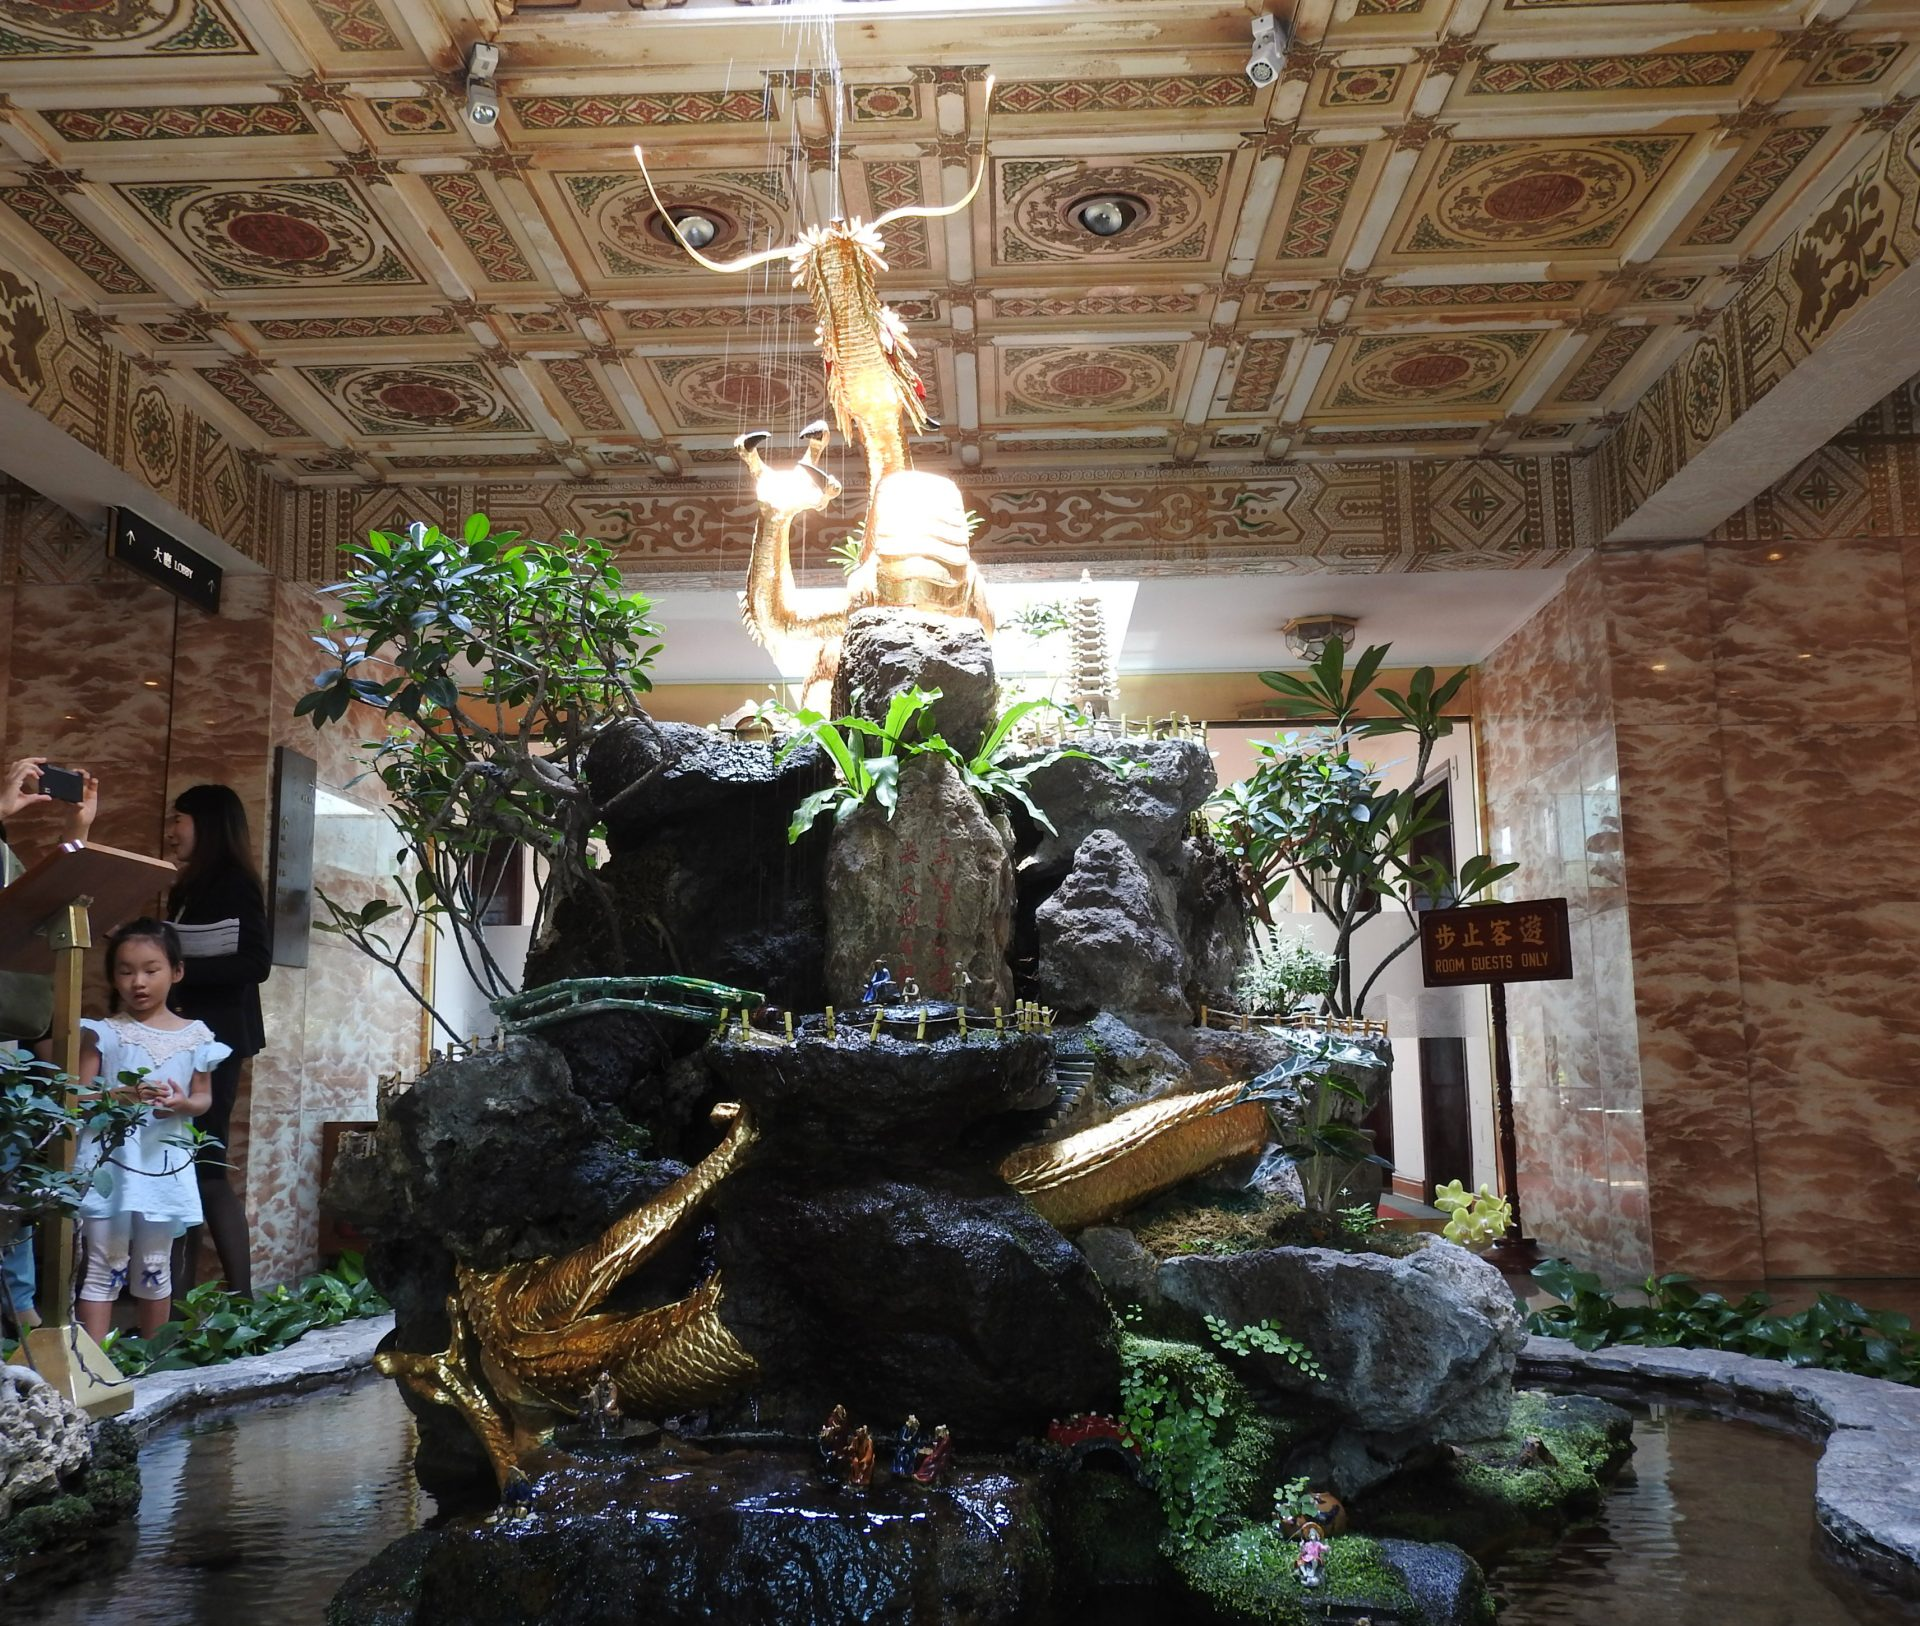 One of the highlights of the Grand Hotel is its century-old Golden Dragon made of bronze and gilded with 24K gold. (Image: Billy Shyu/ Vision Times)